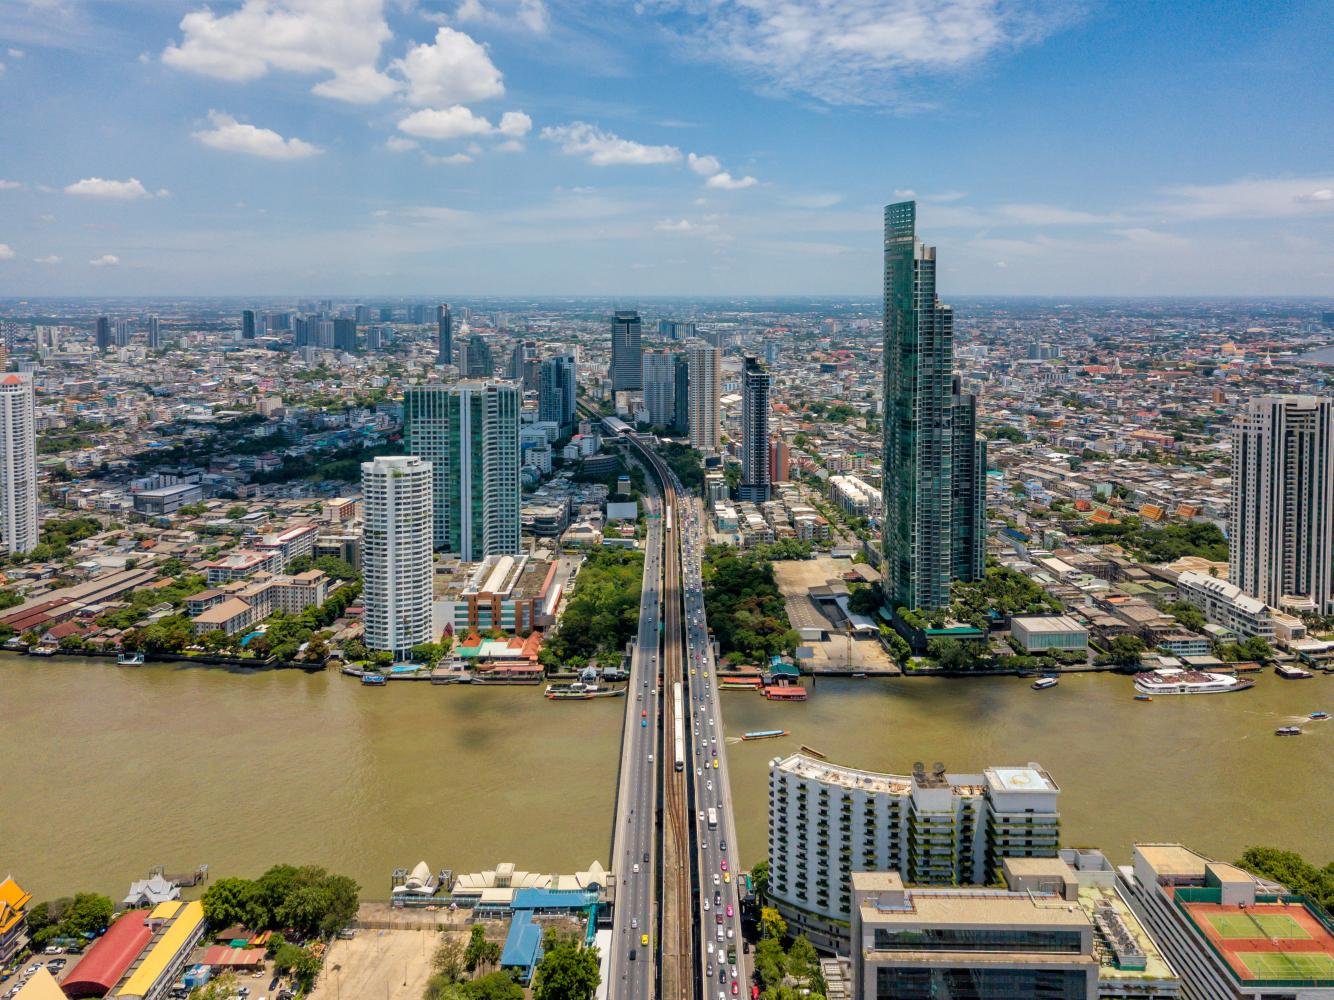 The Bangkok skyline as seen from above Saphan Taksin skytrain station. Ms Neeranuch says Bangkok condos remain at the forefront of foreigners' minds for their second-home plans.